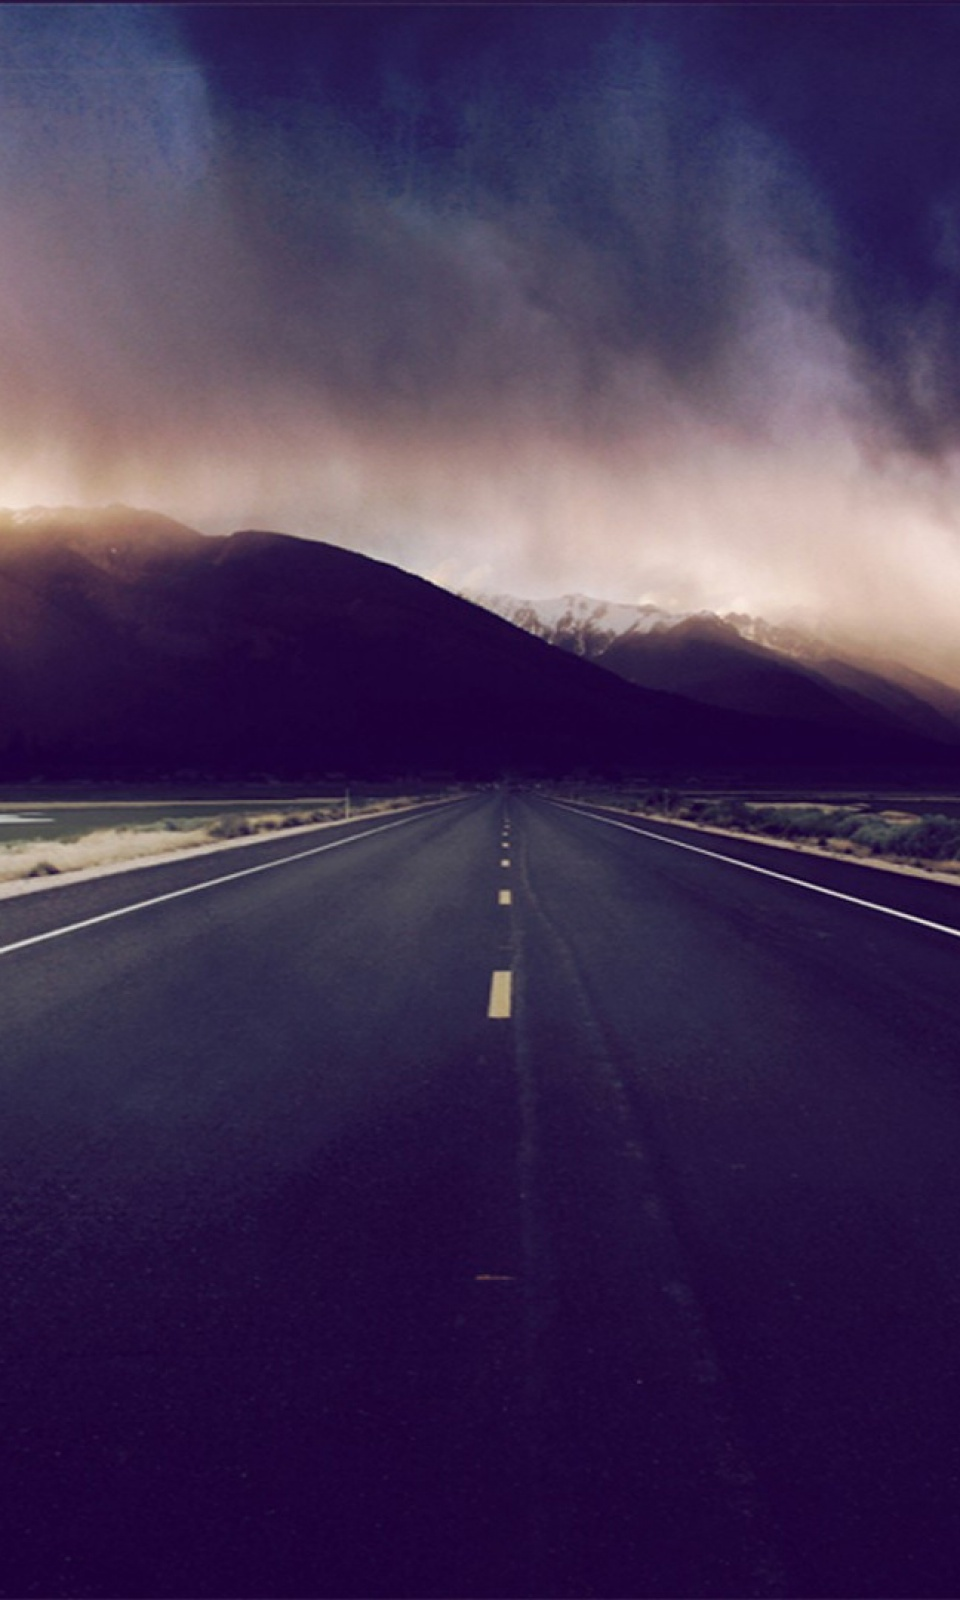 Download Wallpaper Mountain Android - 960-Clouds-Mountains-Road-l  Photograph_43727.jpg